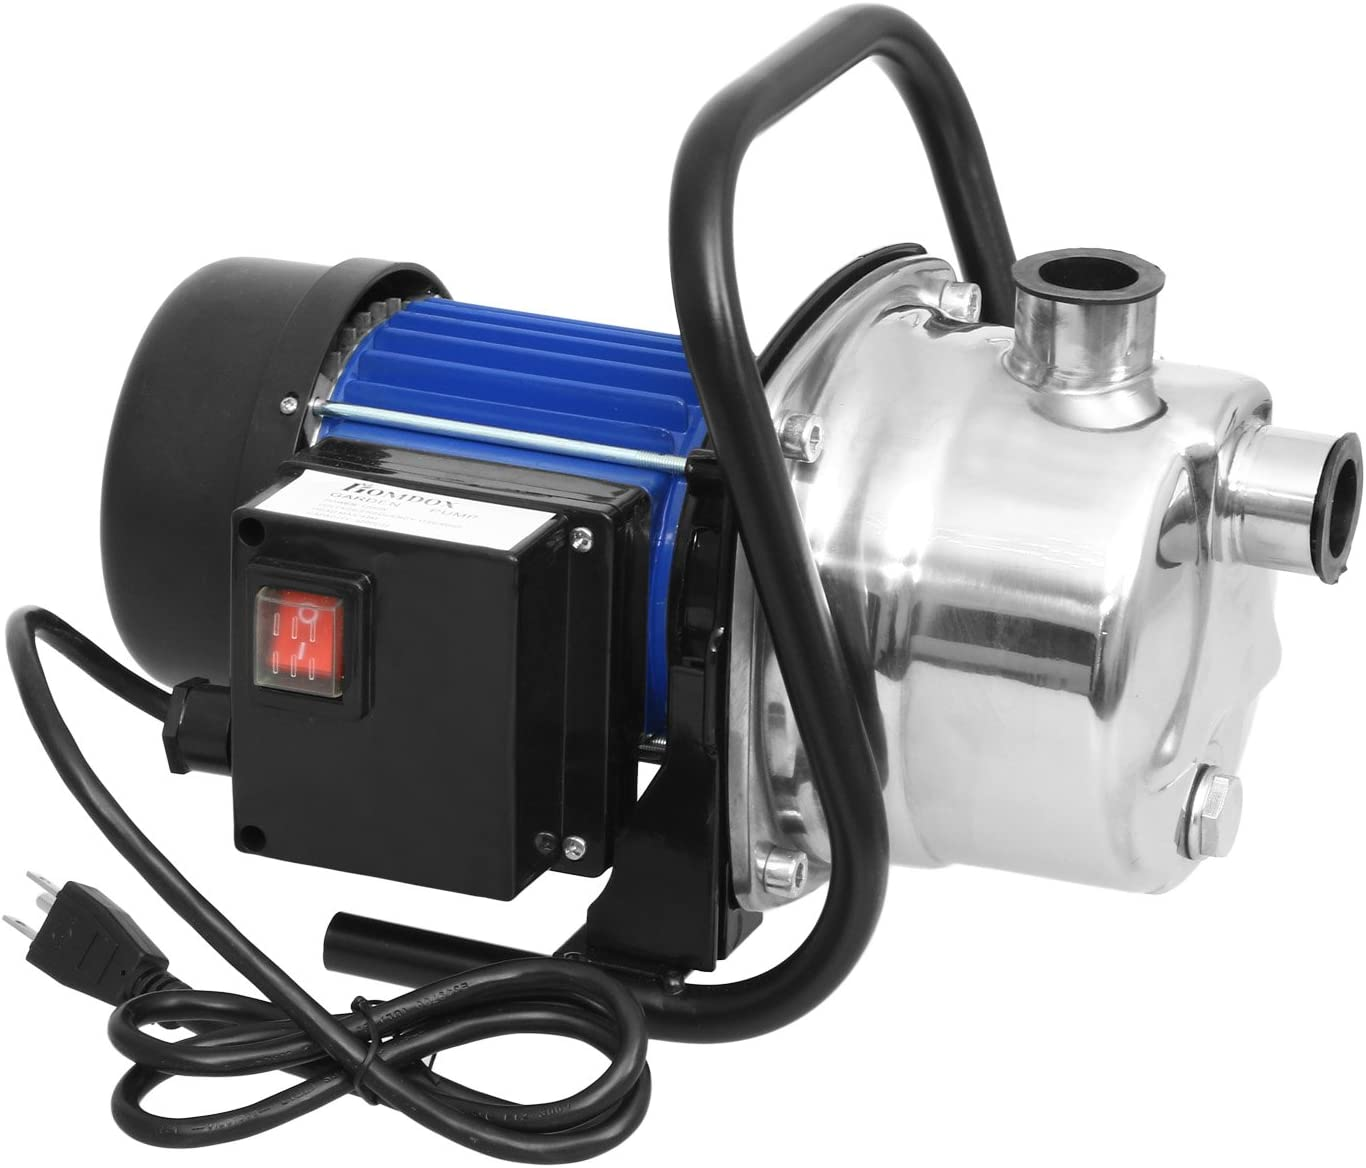 1.6HP Stainless Steel Water Pump Electric Transfer Pump Portable Home Garden Lawn Sprinkling Booster Pump (US Stock) (1.6 HP)